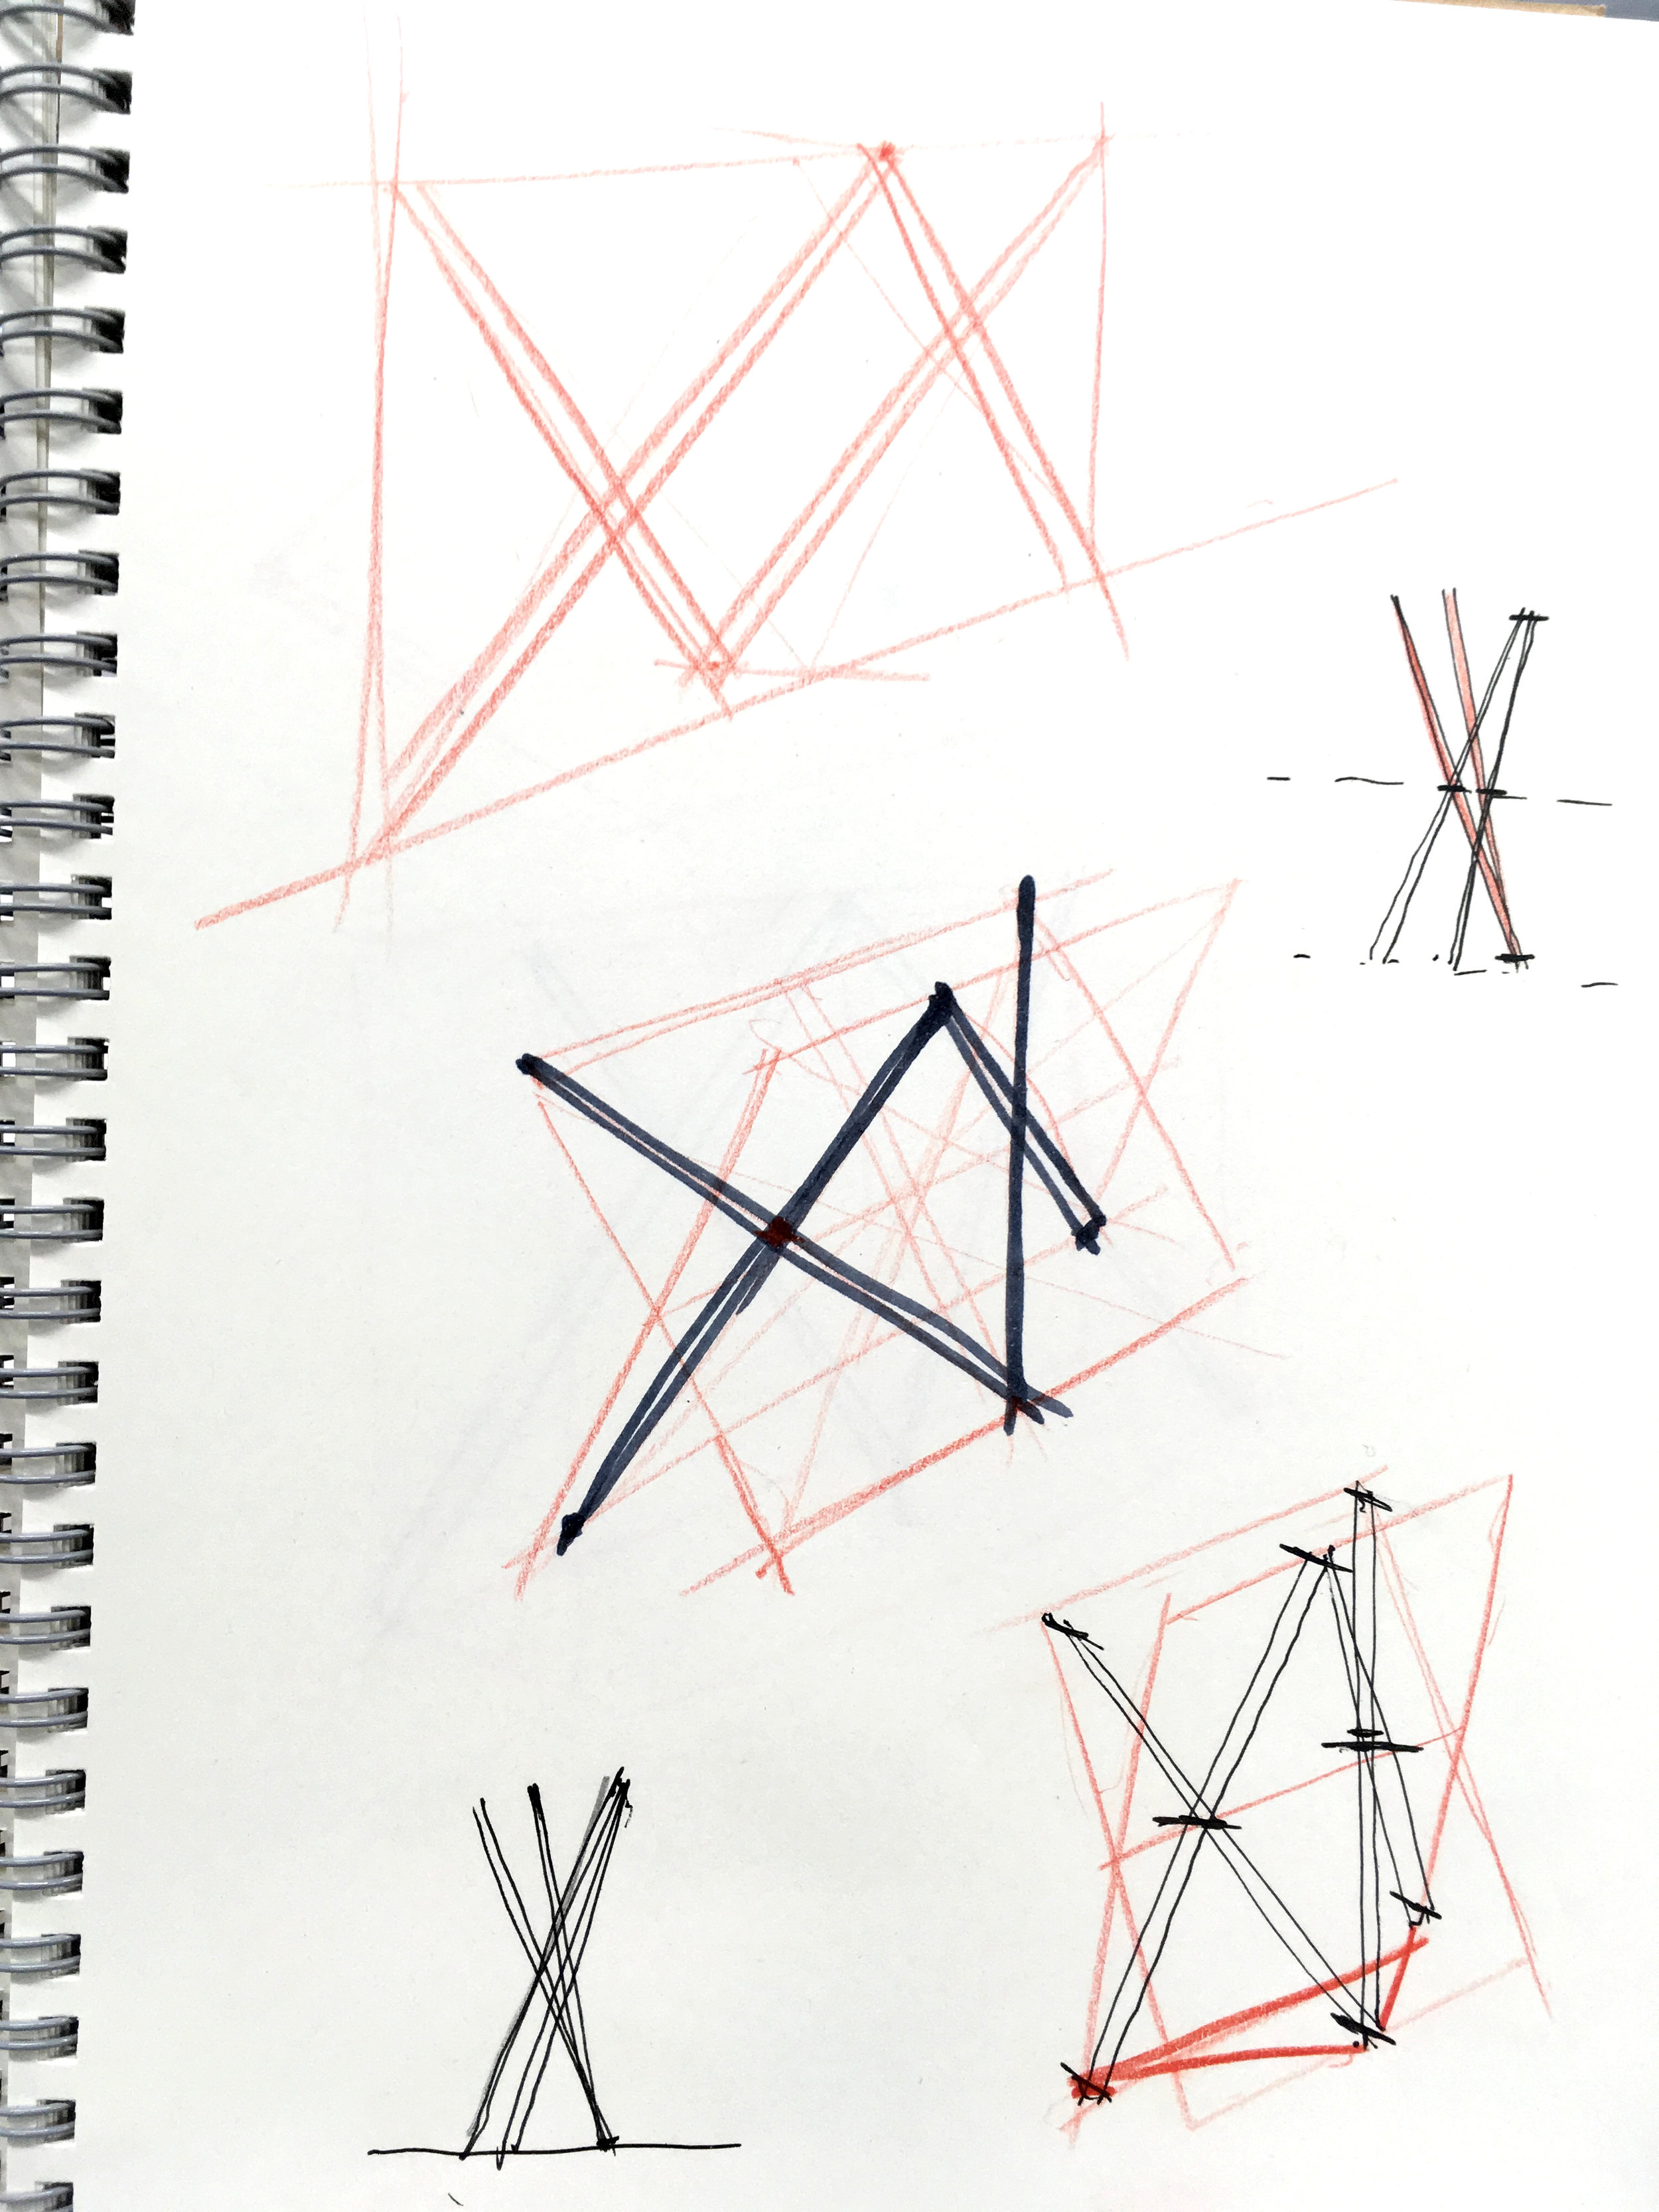 Initial sketches of the structure. It was a brain puzzle to figure out even though I had the general idea in my mind.